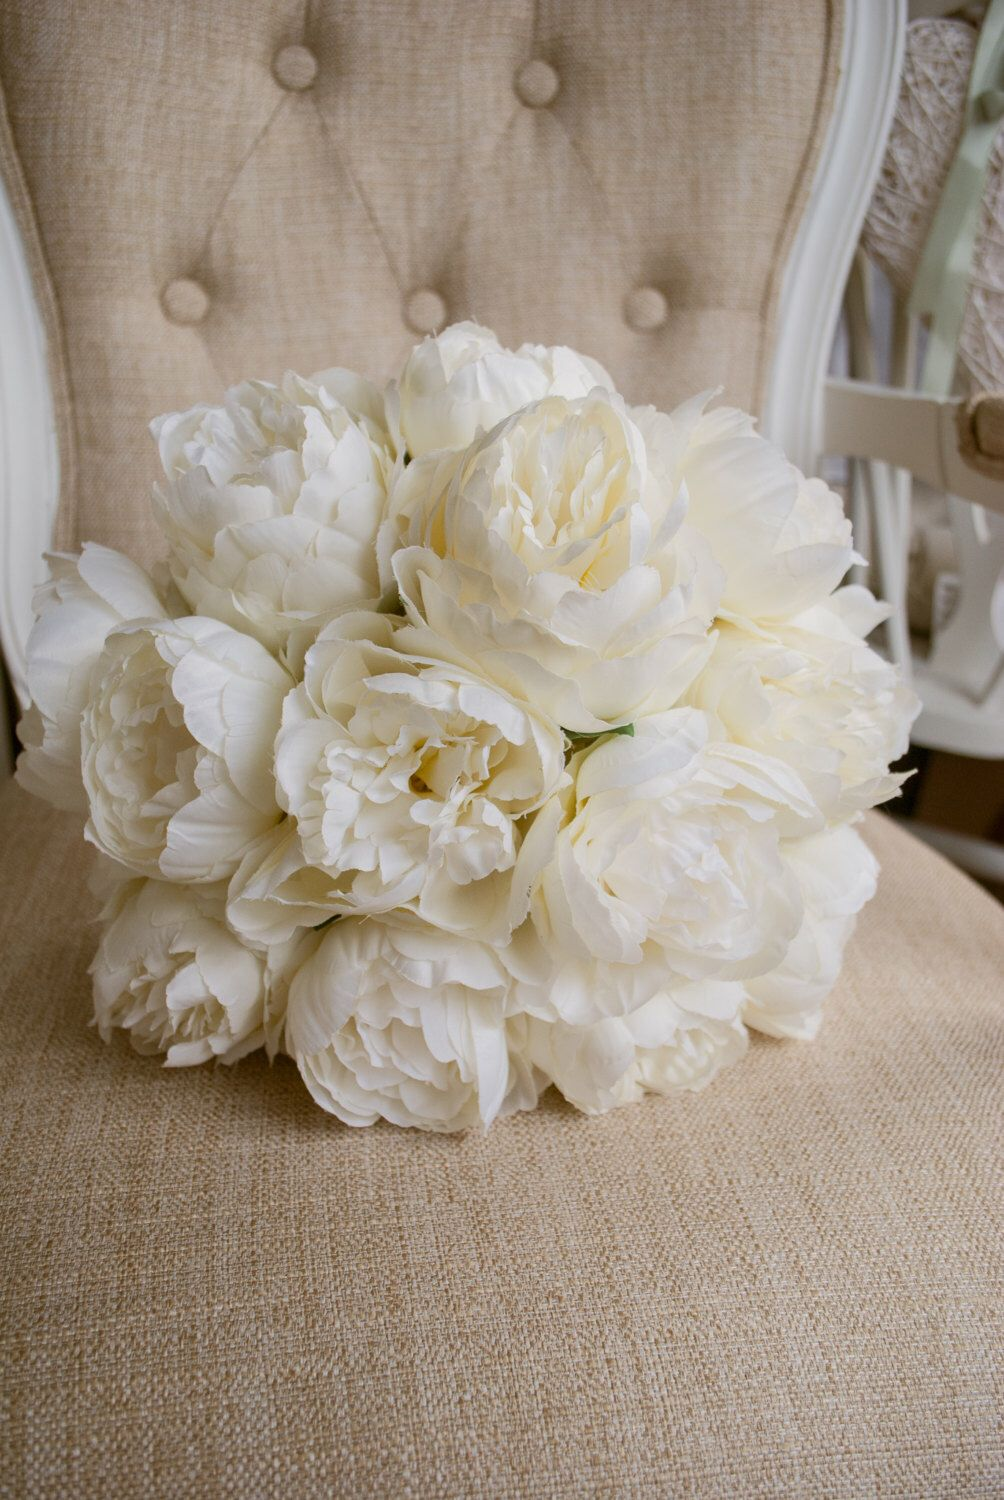 White peony bouquet - silk flowers - Laurel Weddings from my Etsy shop https://www.etsy.com/uk/listing/263812774/luxury-ivory-peony-wedding-bouquet-made